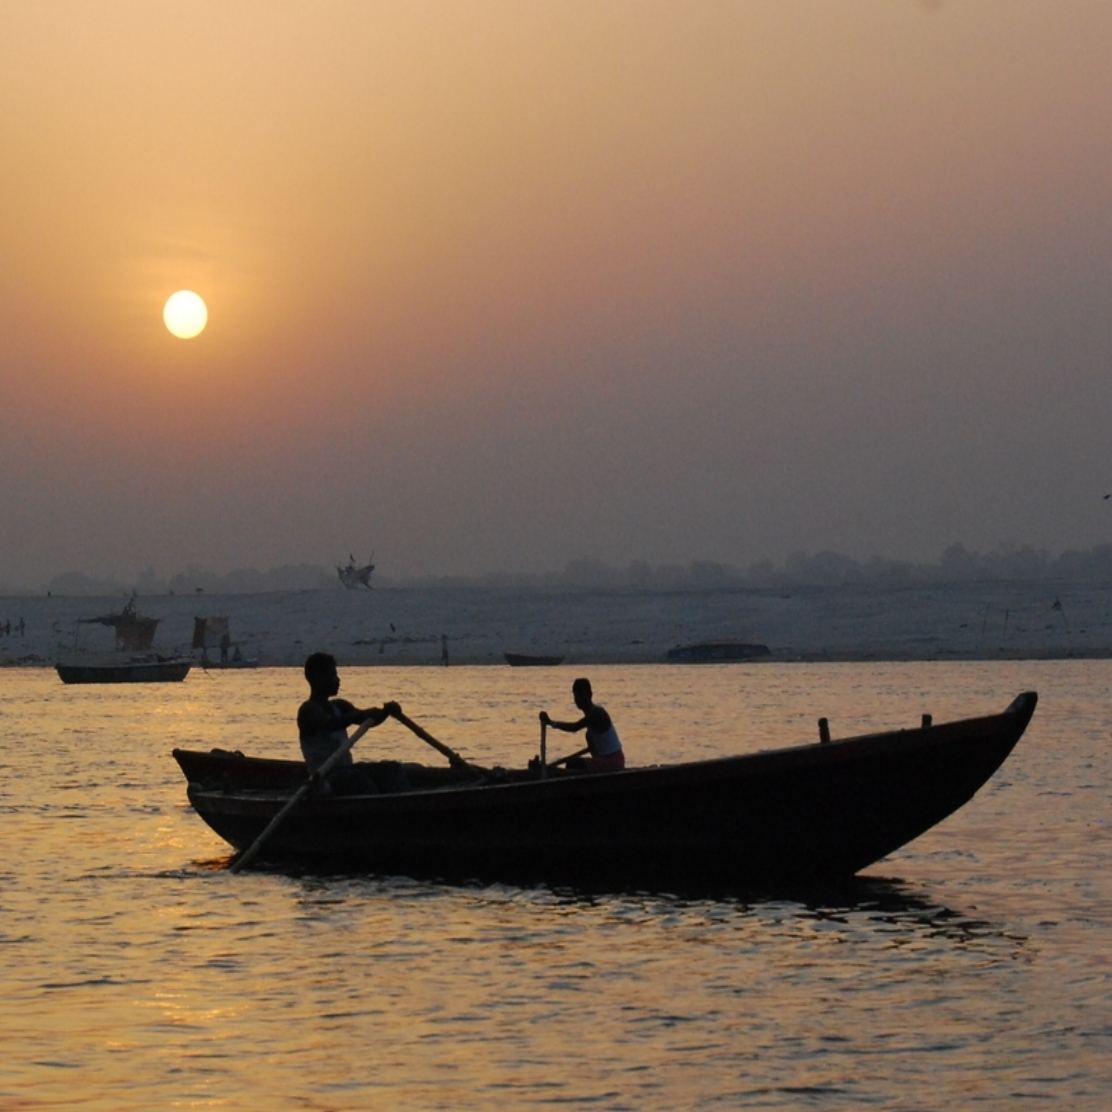 Sunrise on the Ganges, Varanasi India